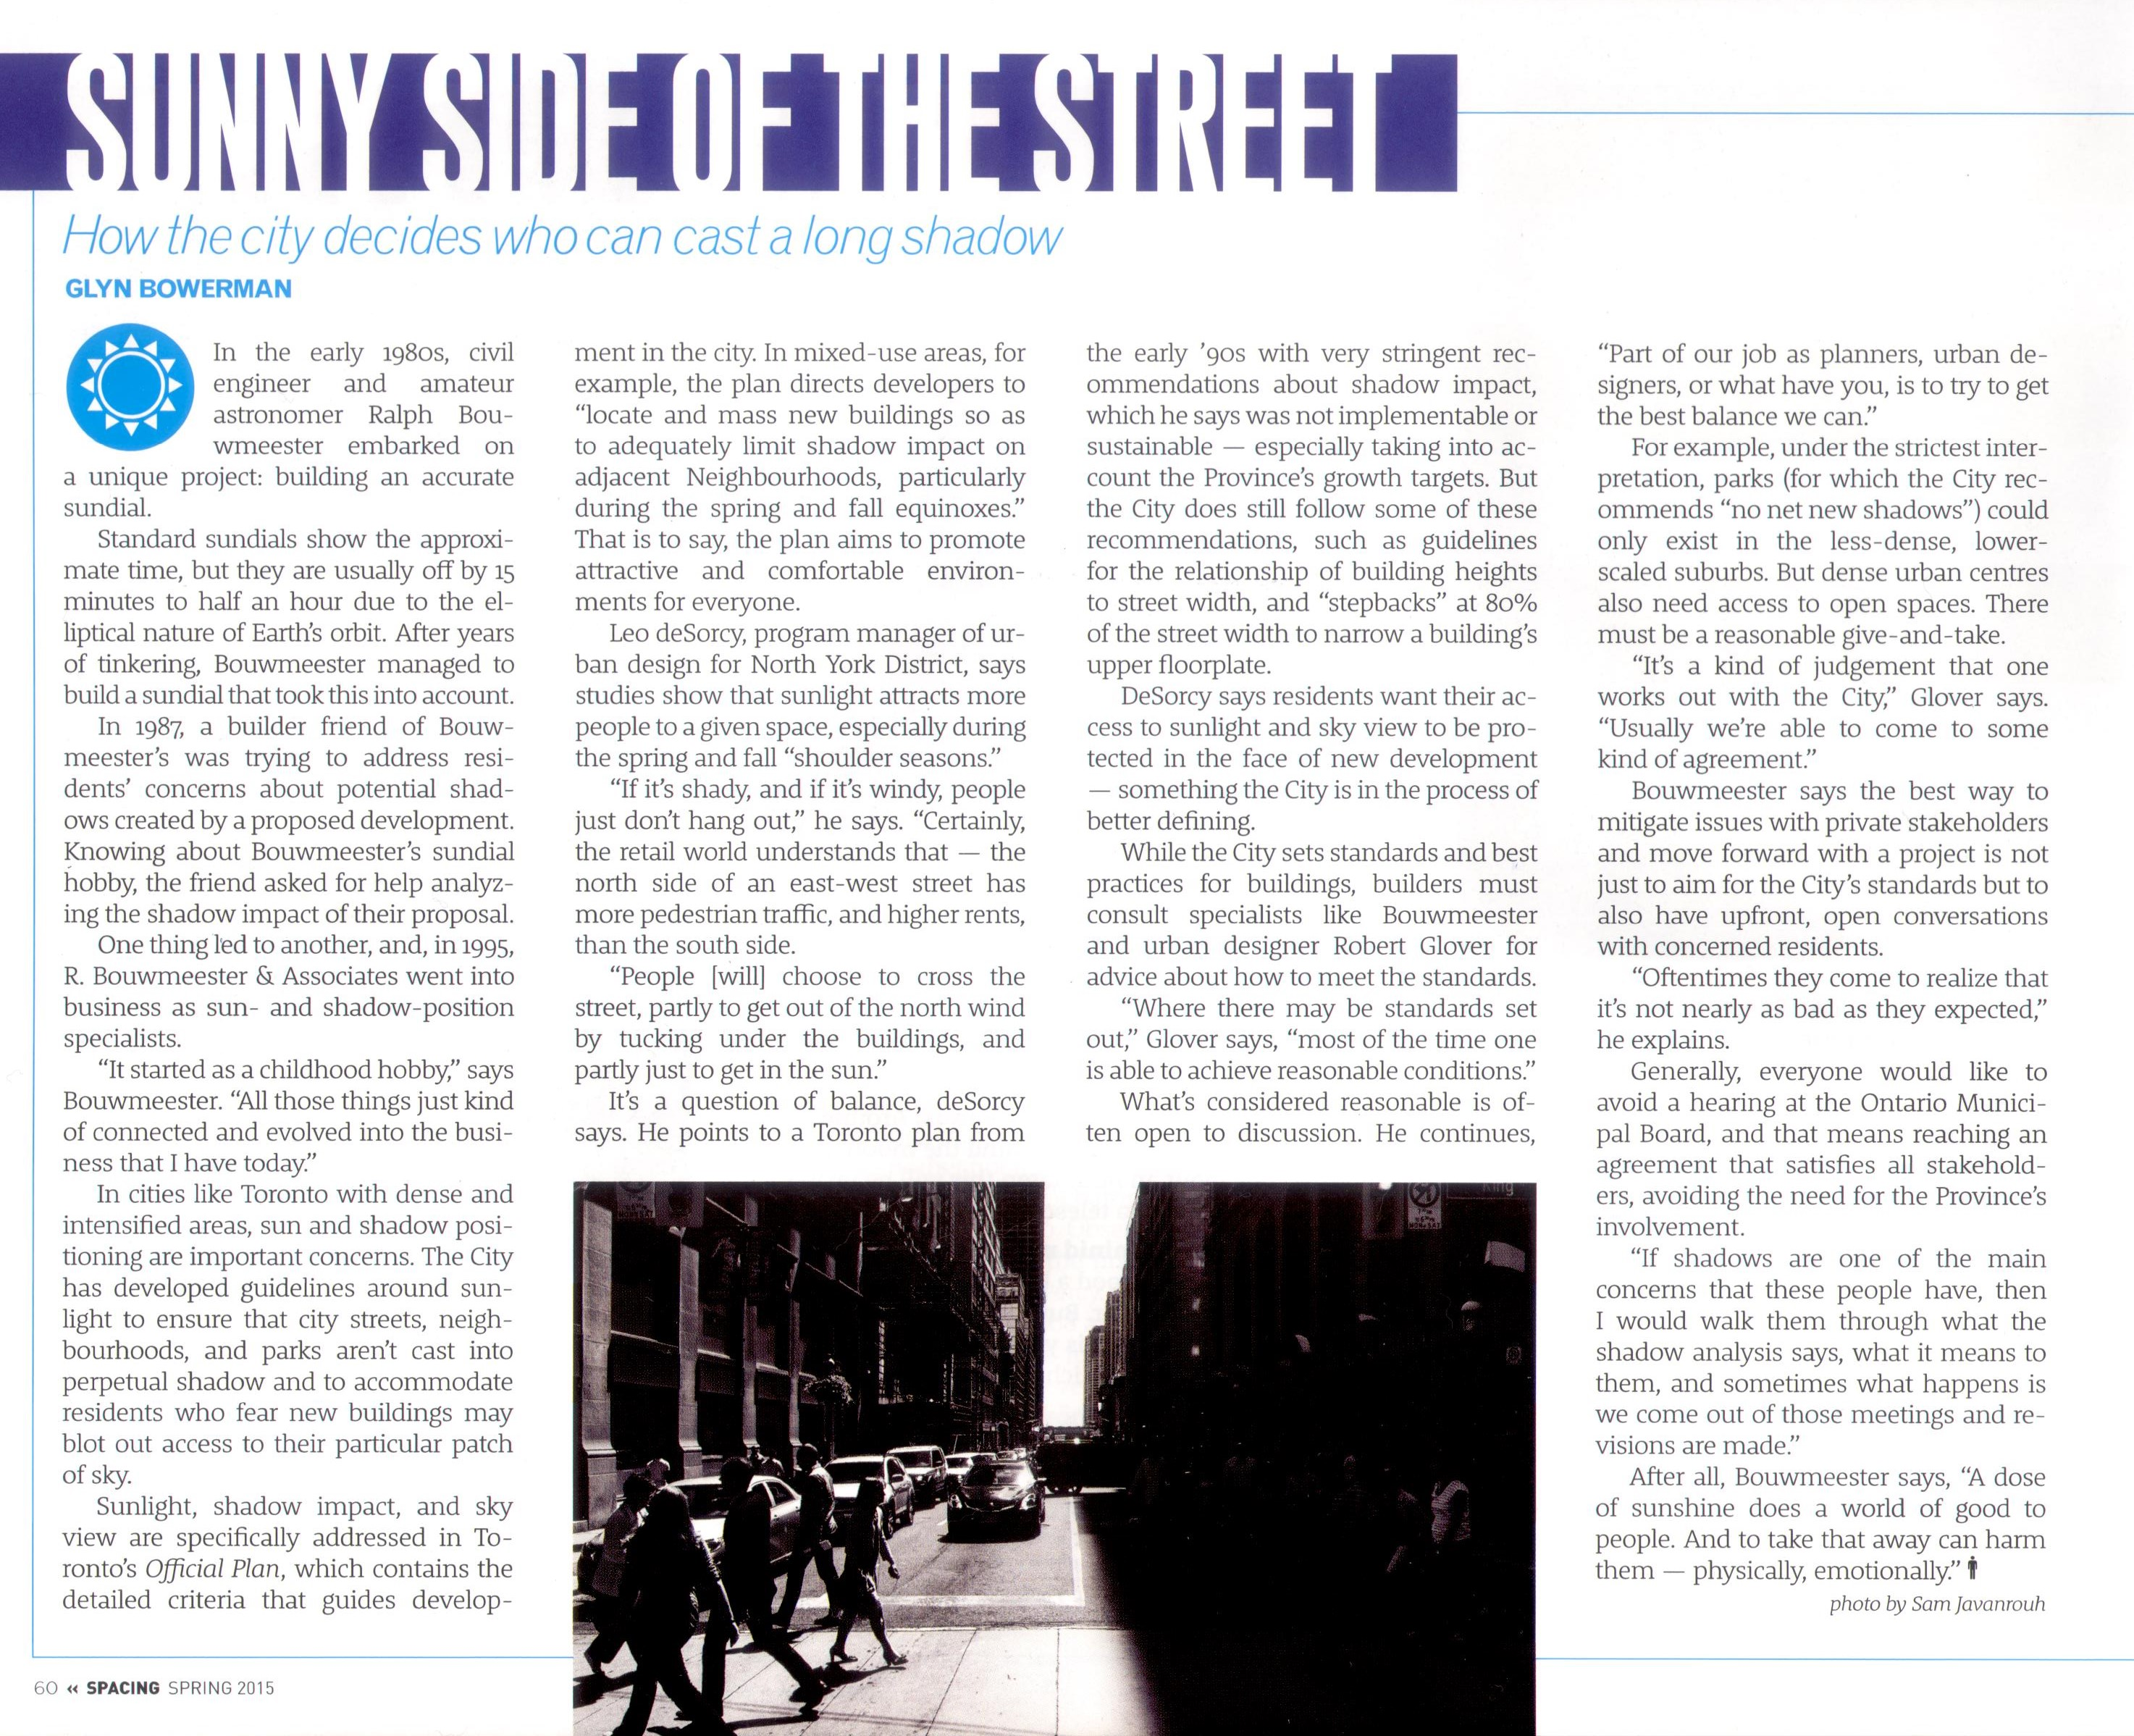 Spacing Mag - sunny side